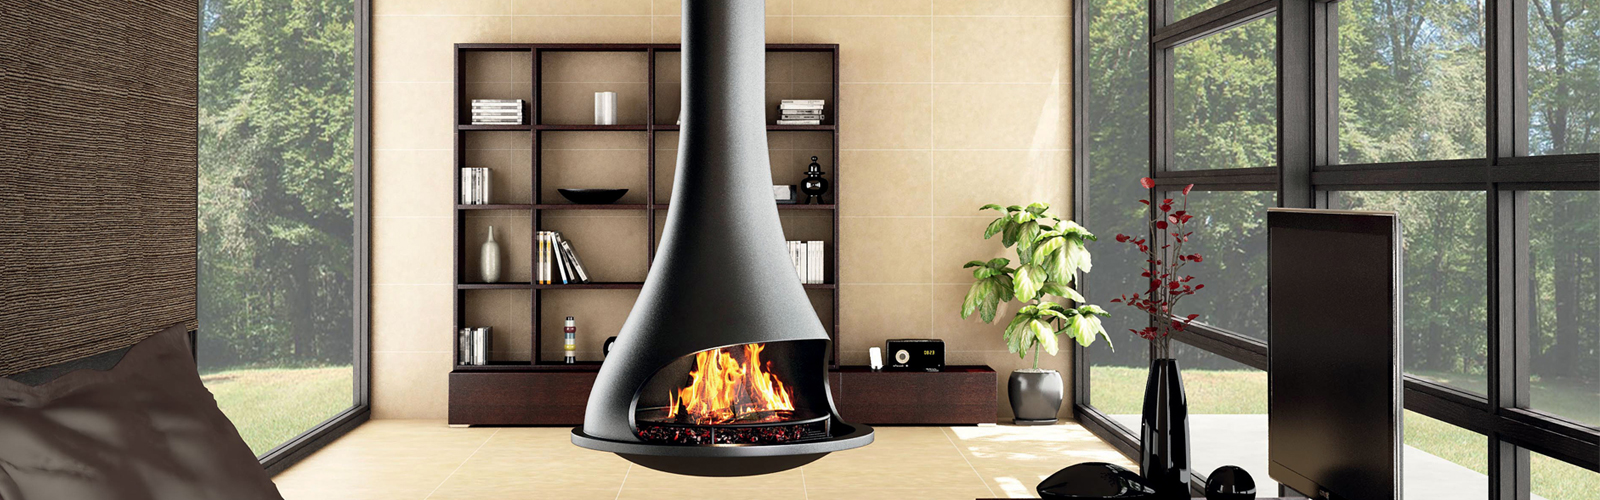 freestanding fireplace alpha gas standing products andirons round free fireplaces natural arched insert vent direct